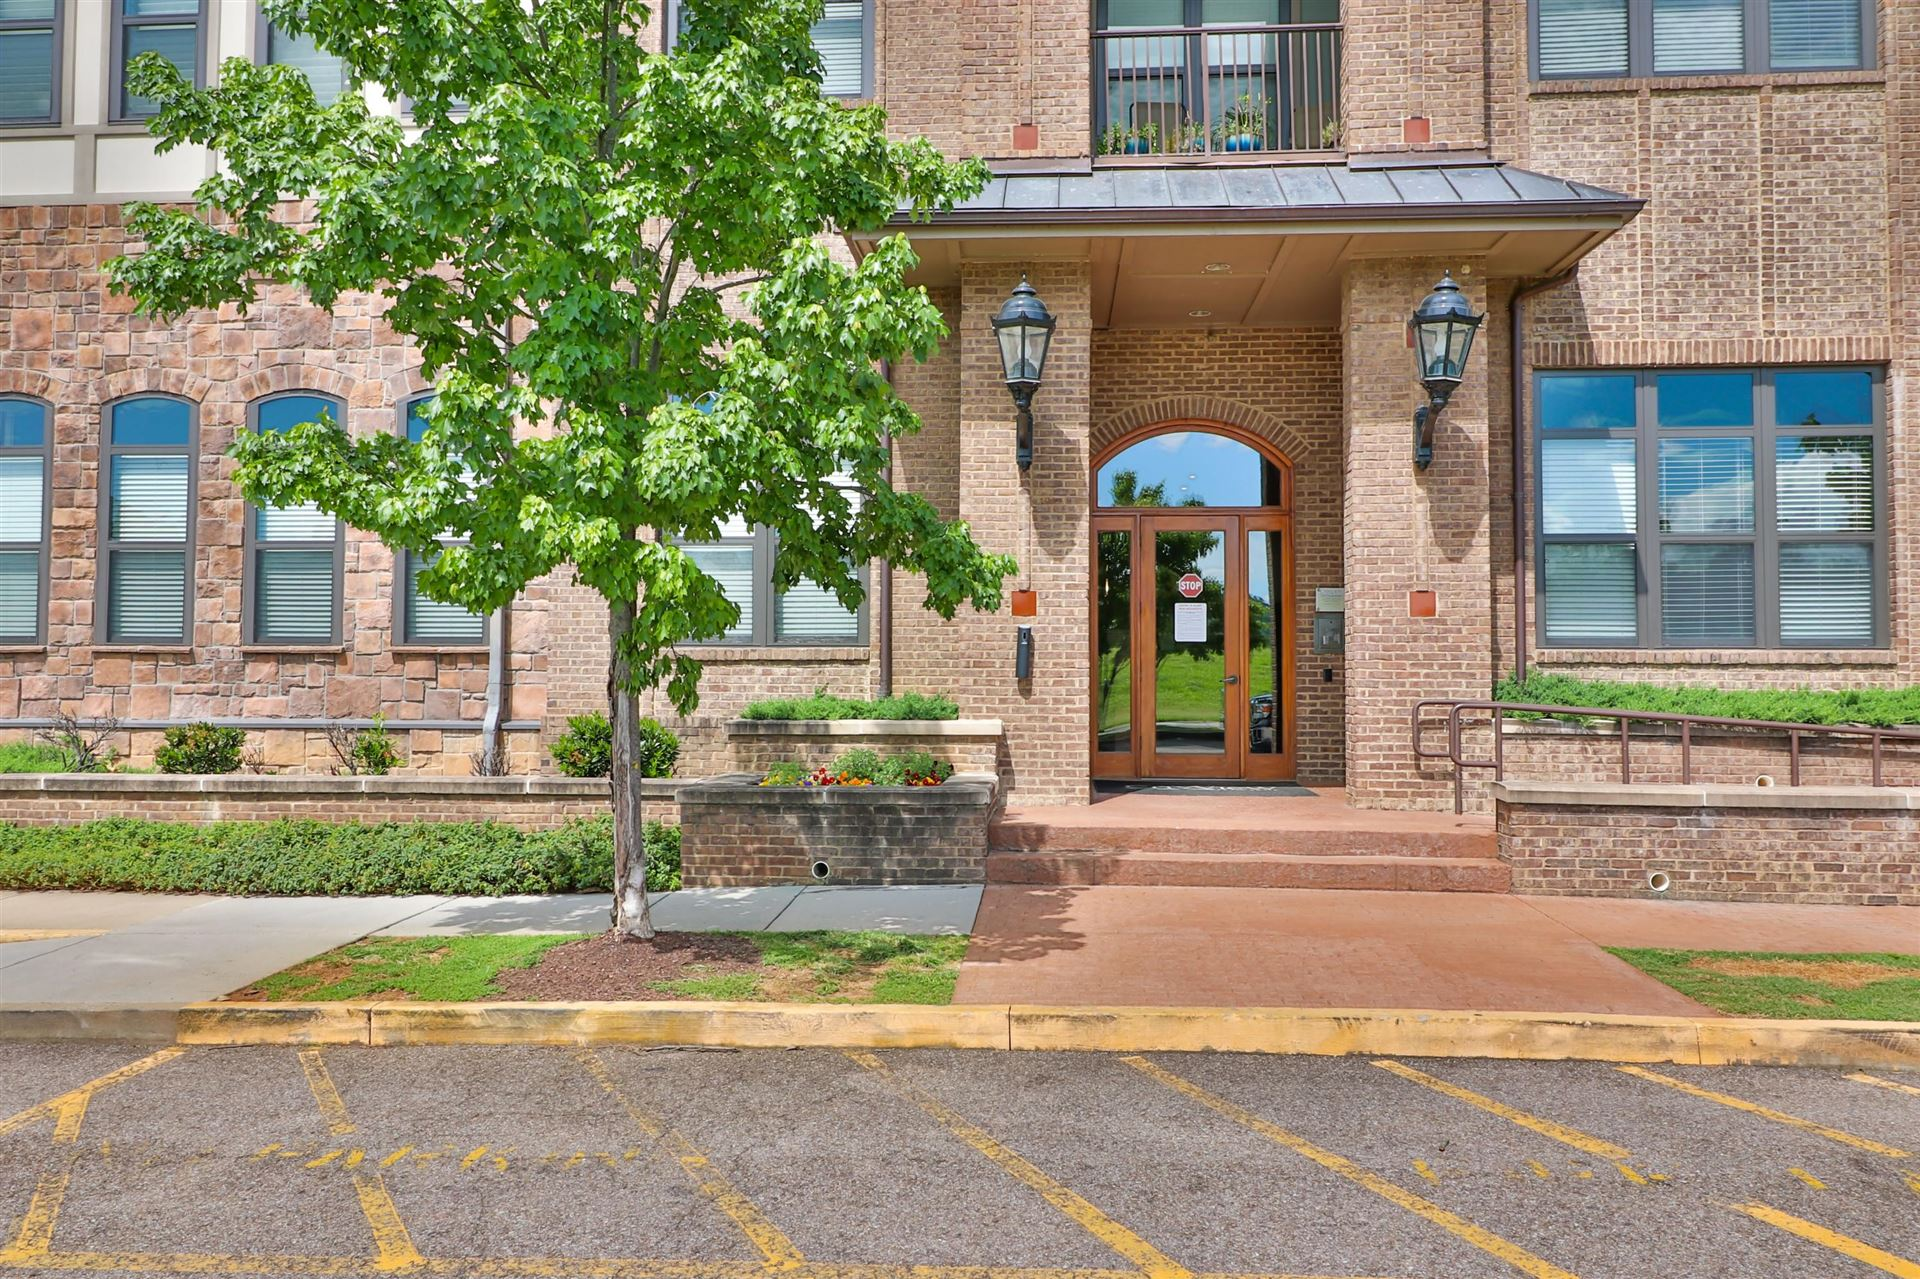 Photo for 445 W. Blount Ave #524, Knoxville, TN 37920 (MLS # 1117556)